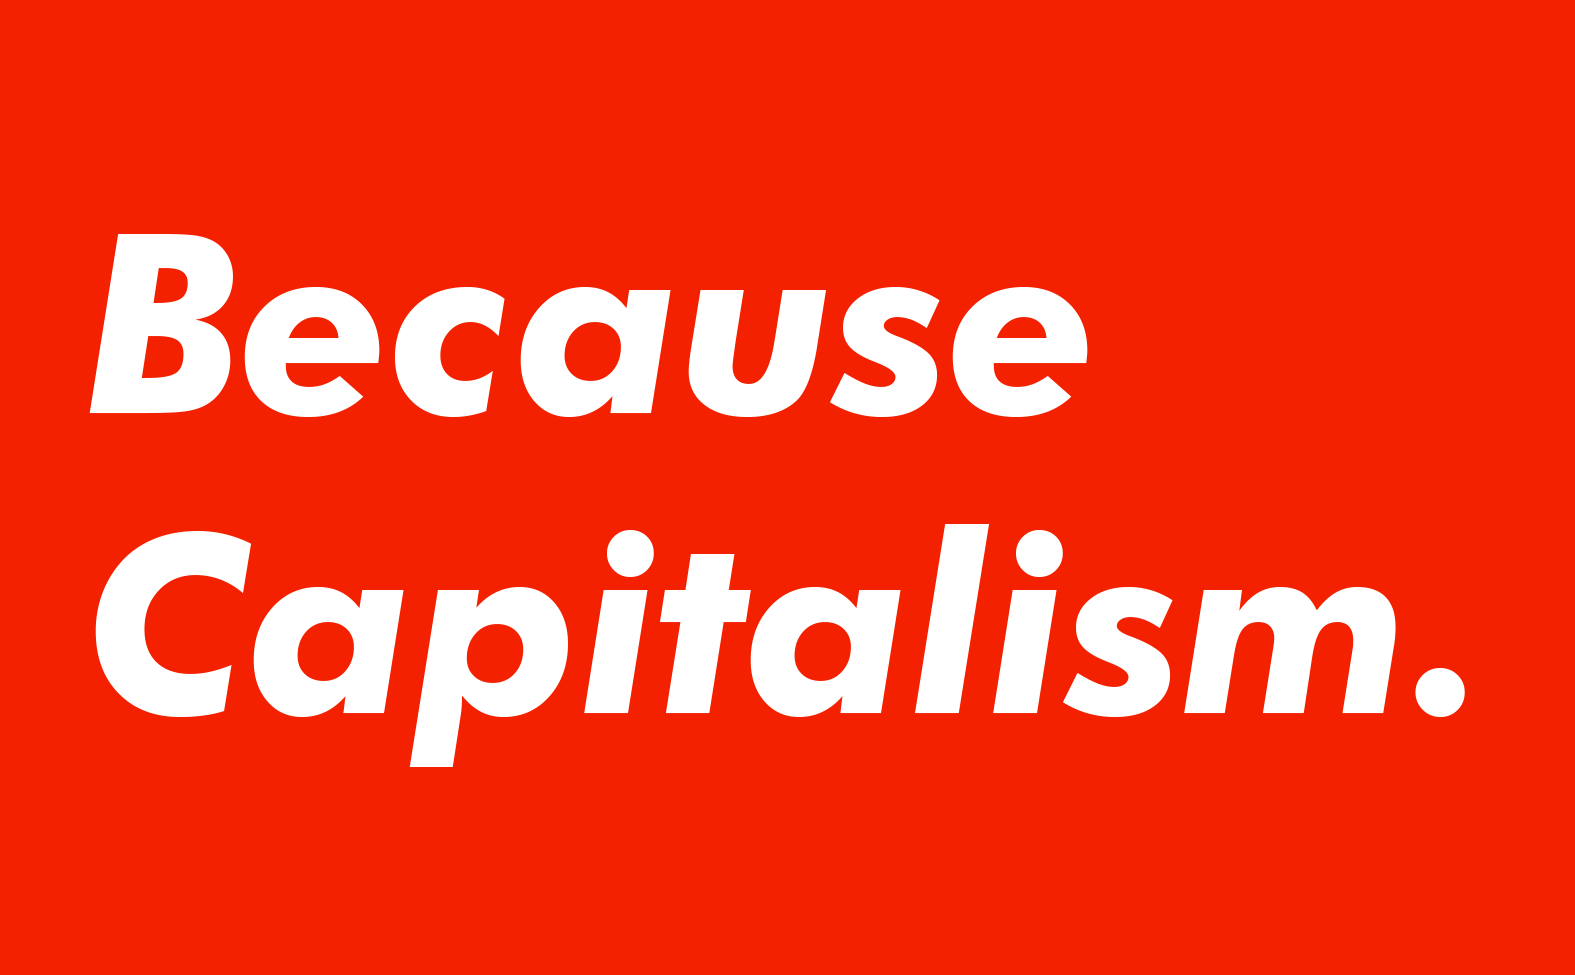 #becausecapitalism